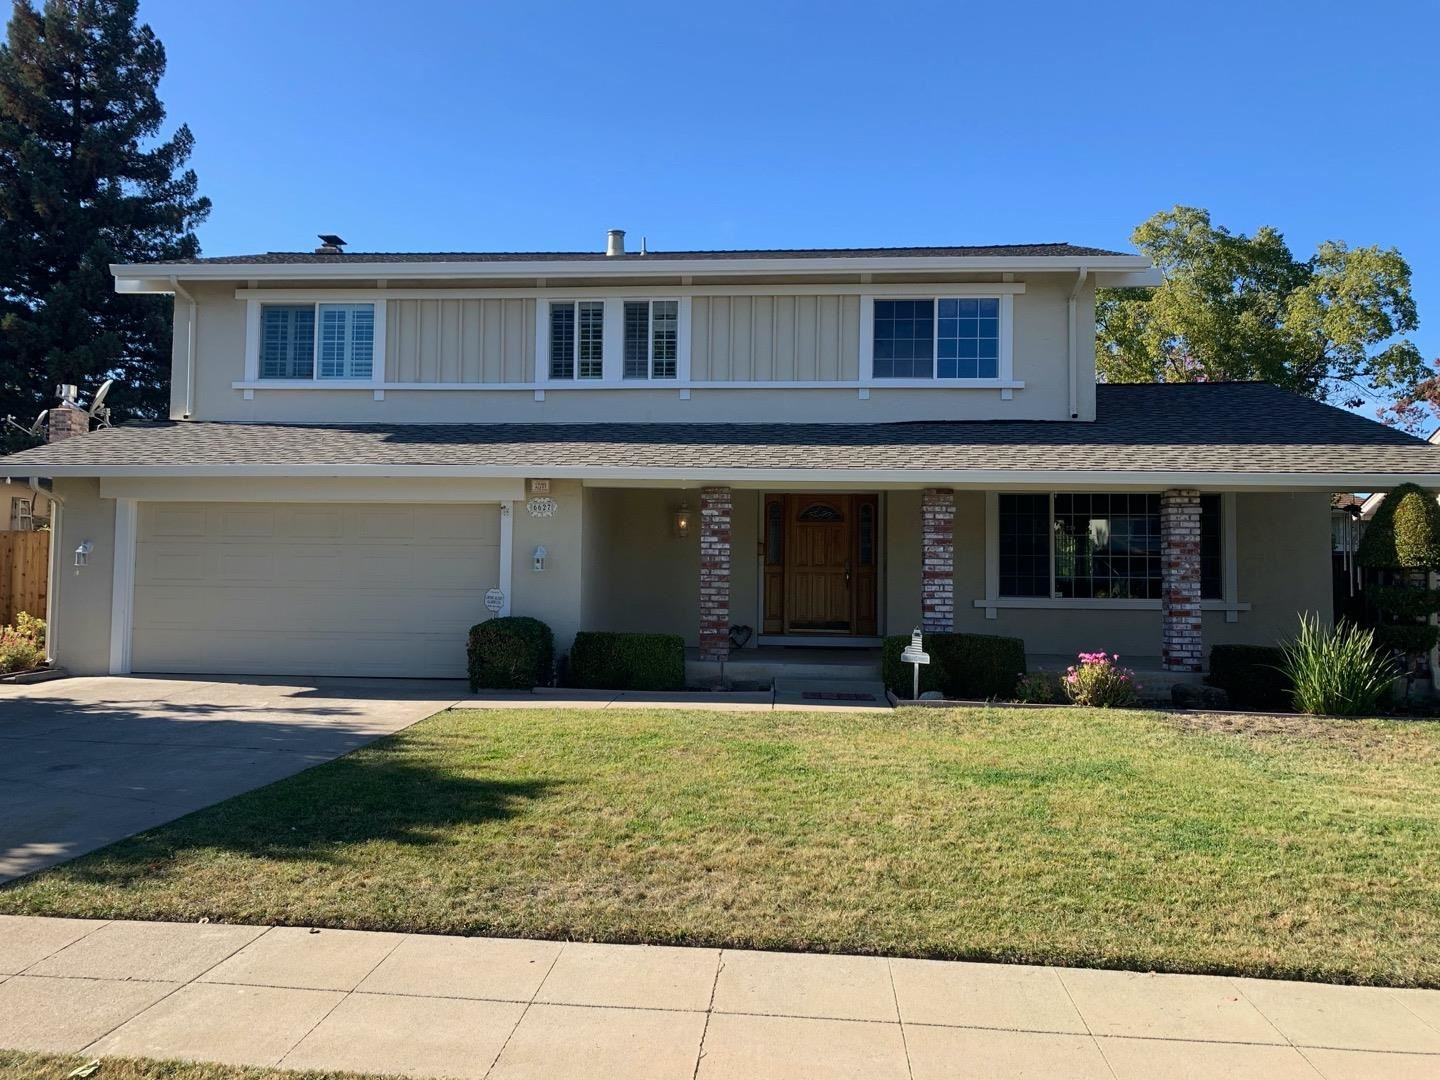 Photo for 6627 Mount Forest DR, SAN JOSE, CA 95120 (MLS # ML81819588)